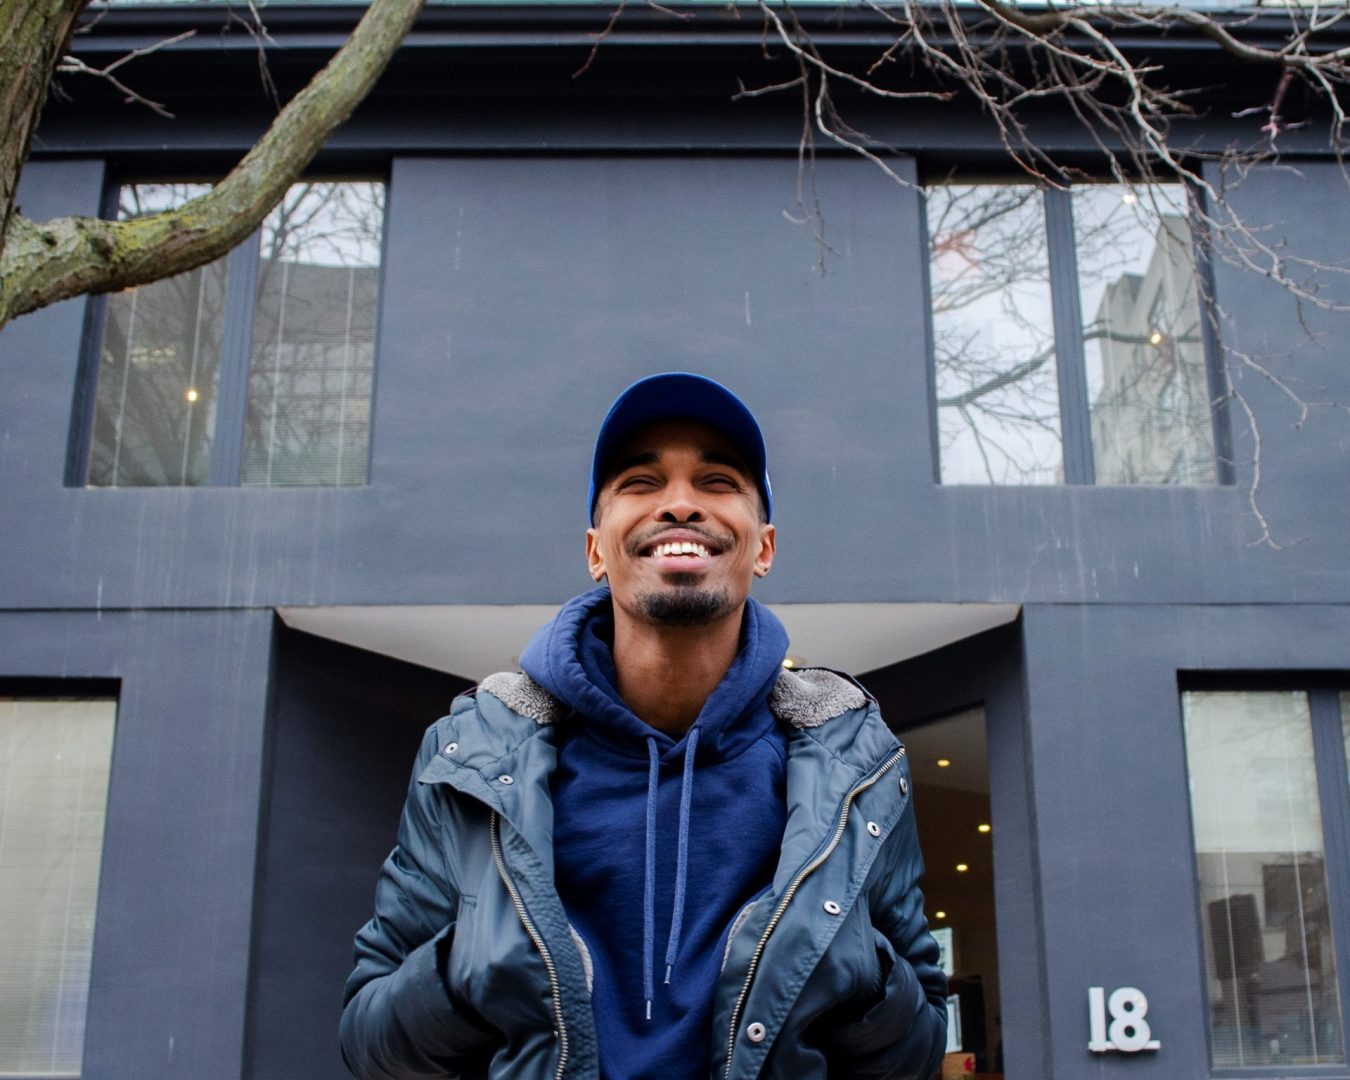 A portrait of Abdul standing outside of the Stella's Place building, smiling, with hands inside their blue jacket. They are wearing a blue baseball cap and a blue hoodie underneath the coat.